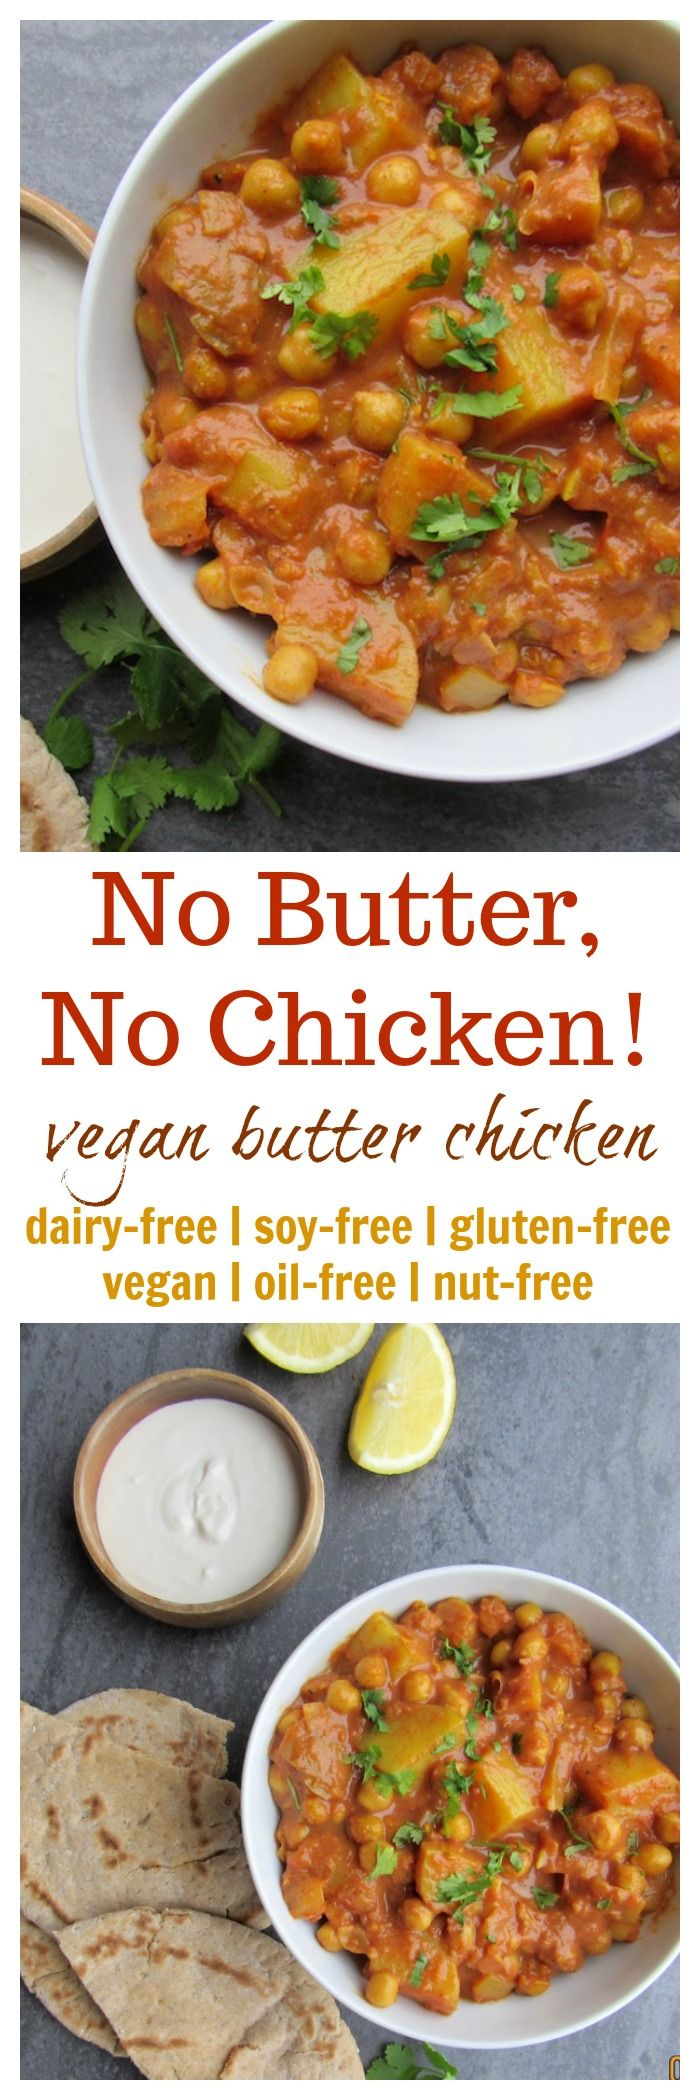 No Butter No Chicken